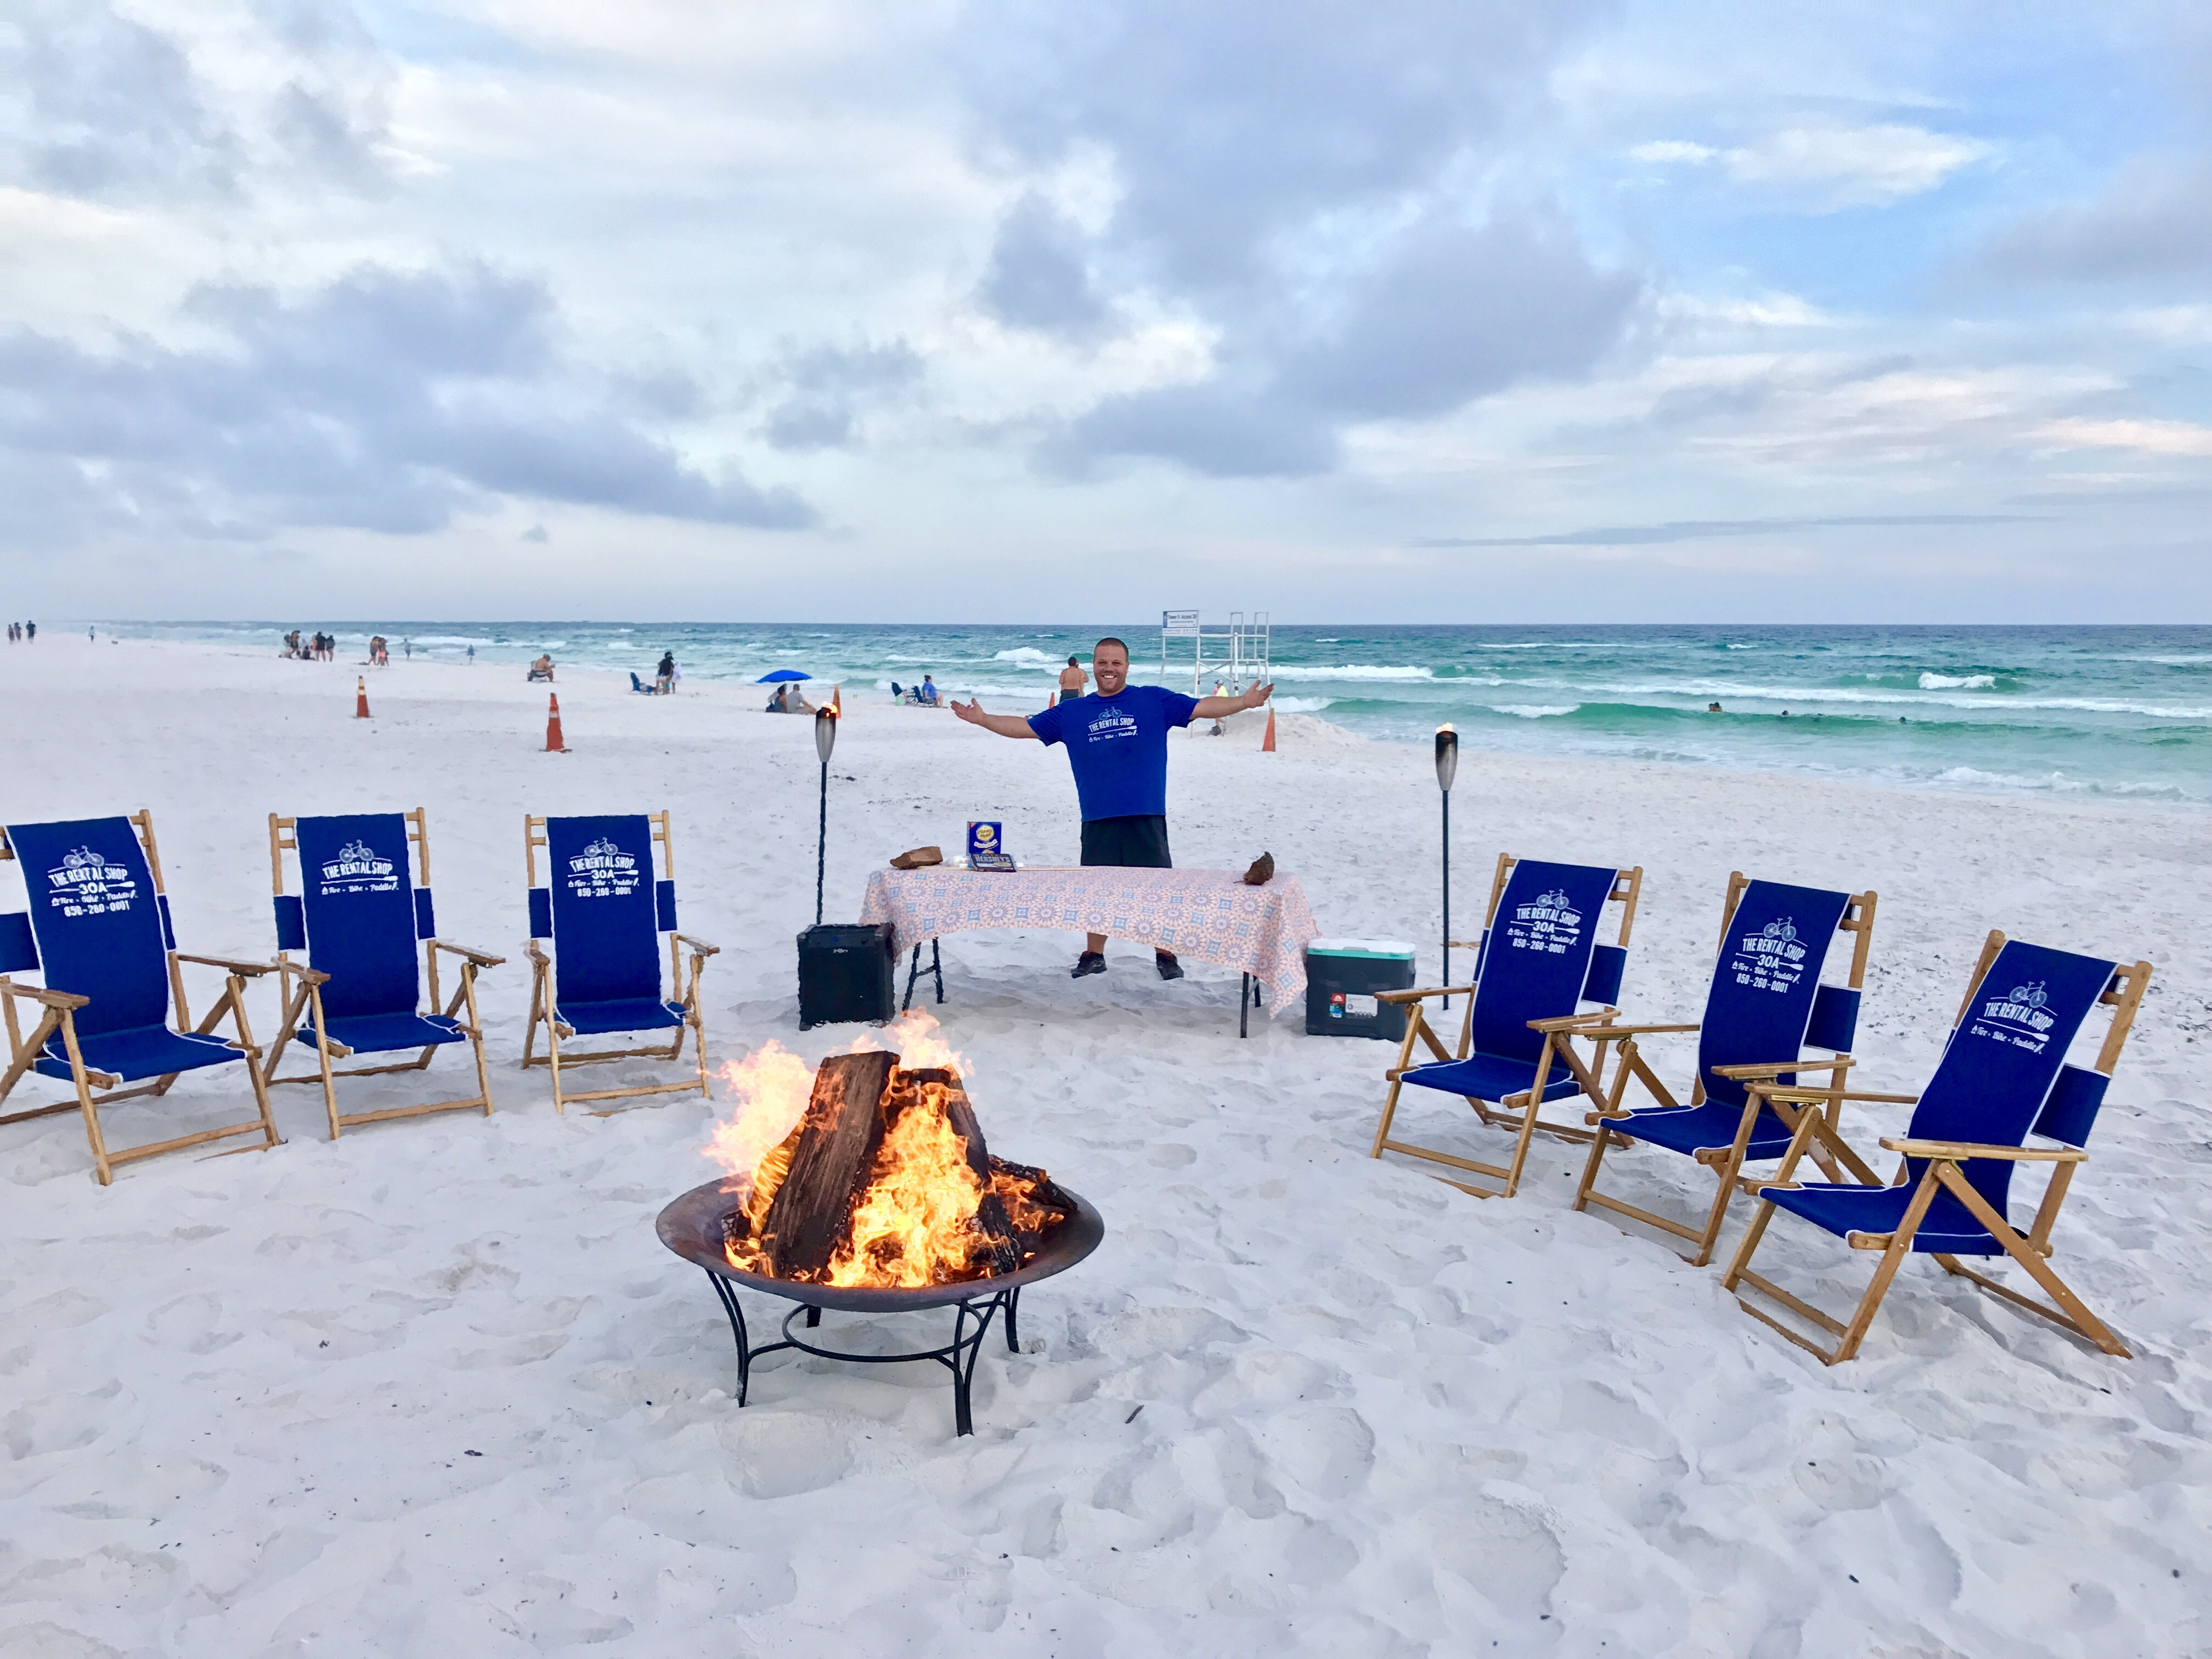 DESTIN & SANTA ROSA BEACH BONFIRES THE RENTAL SHOP 30A